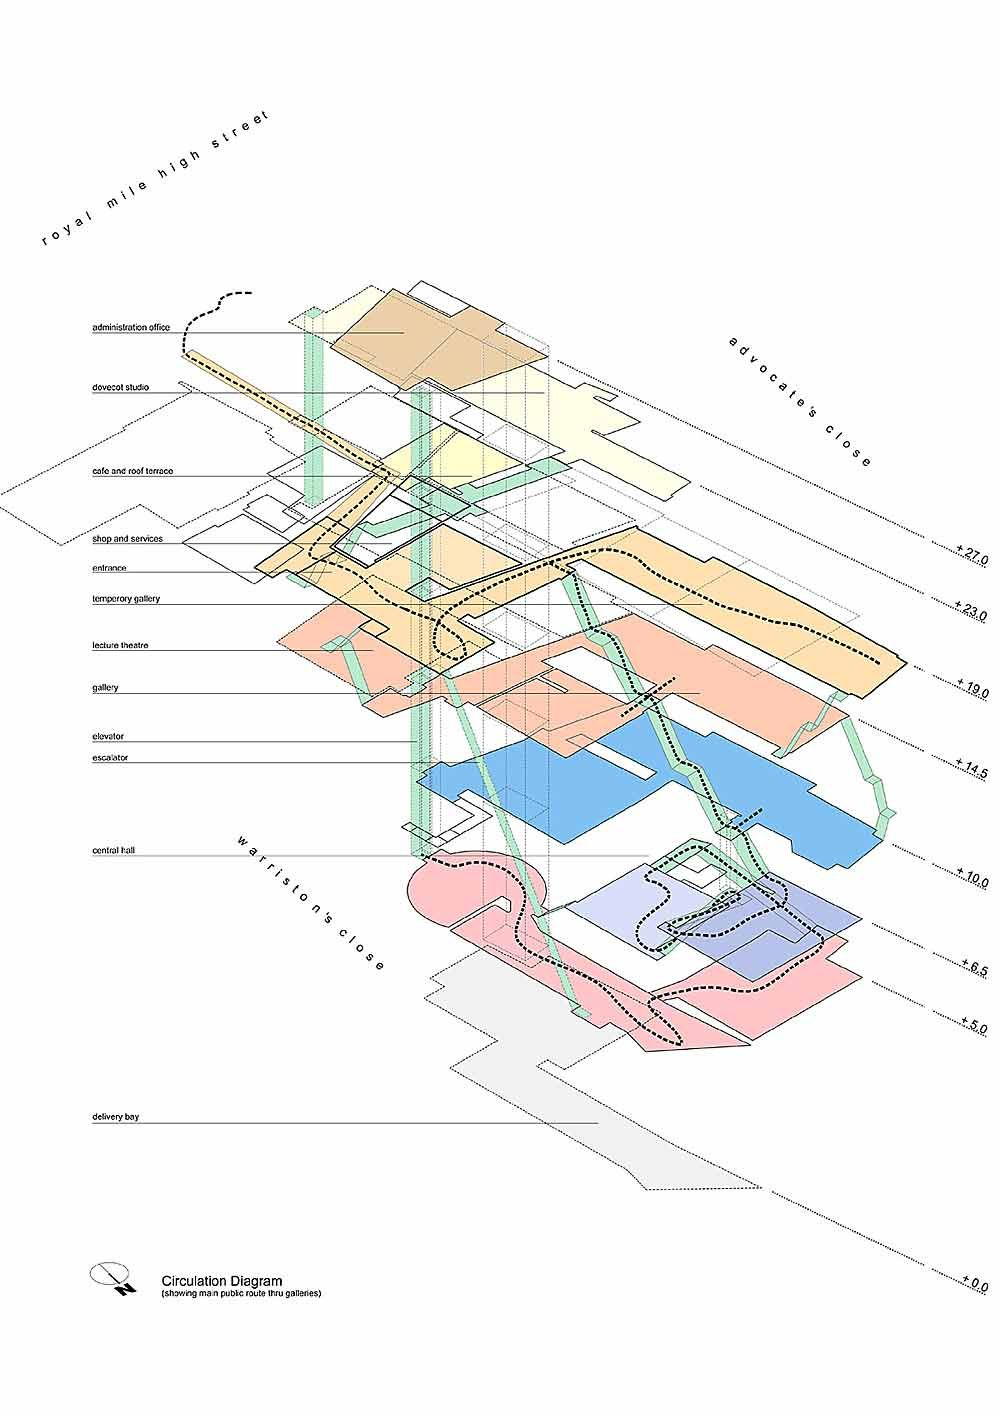 hight resolution of architectural circulation diagram google search arc607 diagram architectural circulation diagram google search